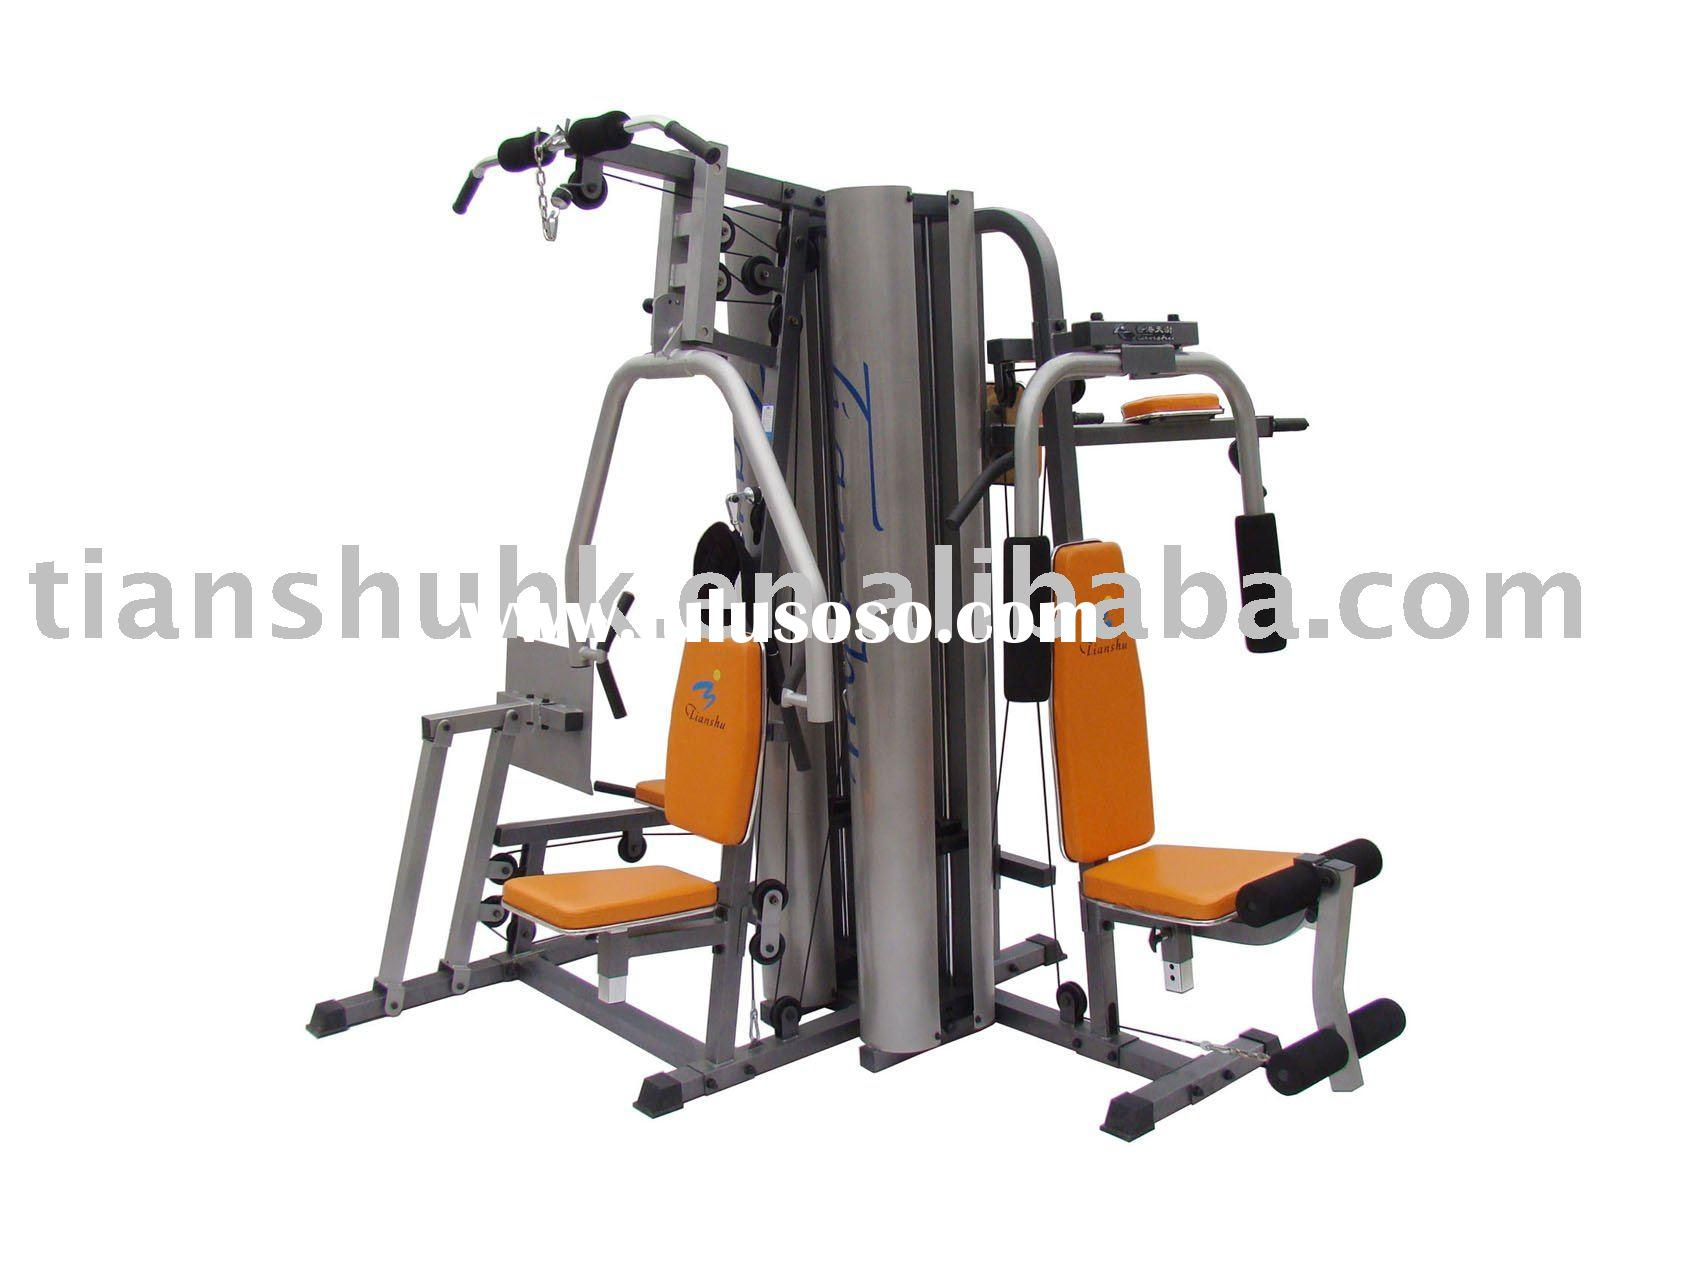 fitness gym equipment 5-station integrate exercise machine